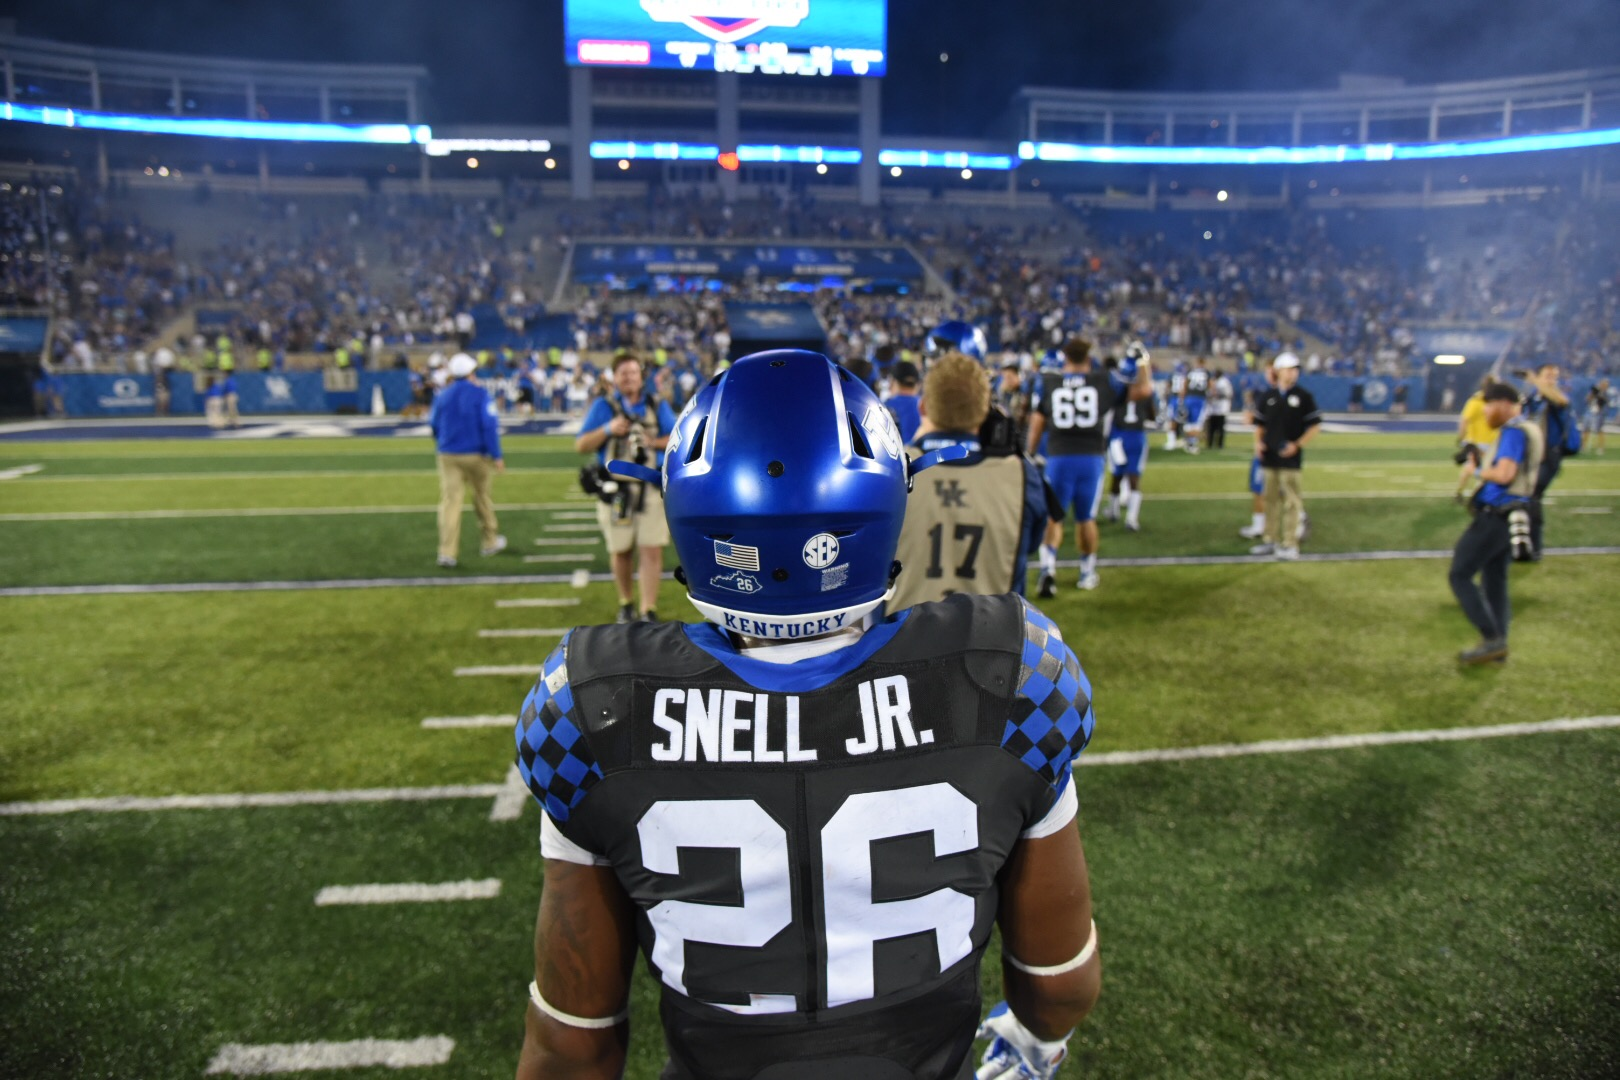 Benny Snell after Kentucky's win over South Carolina. Photo by: Brandon Turner